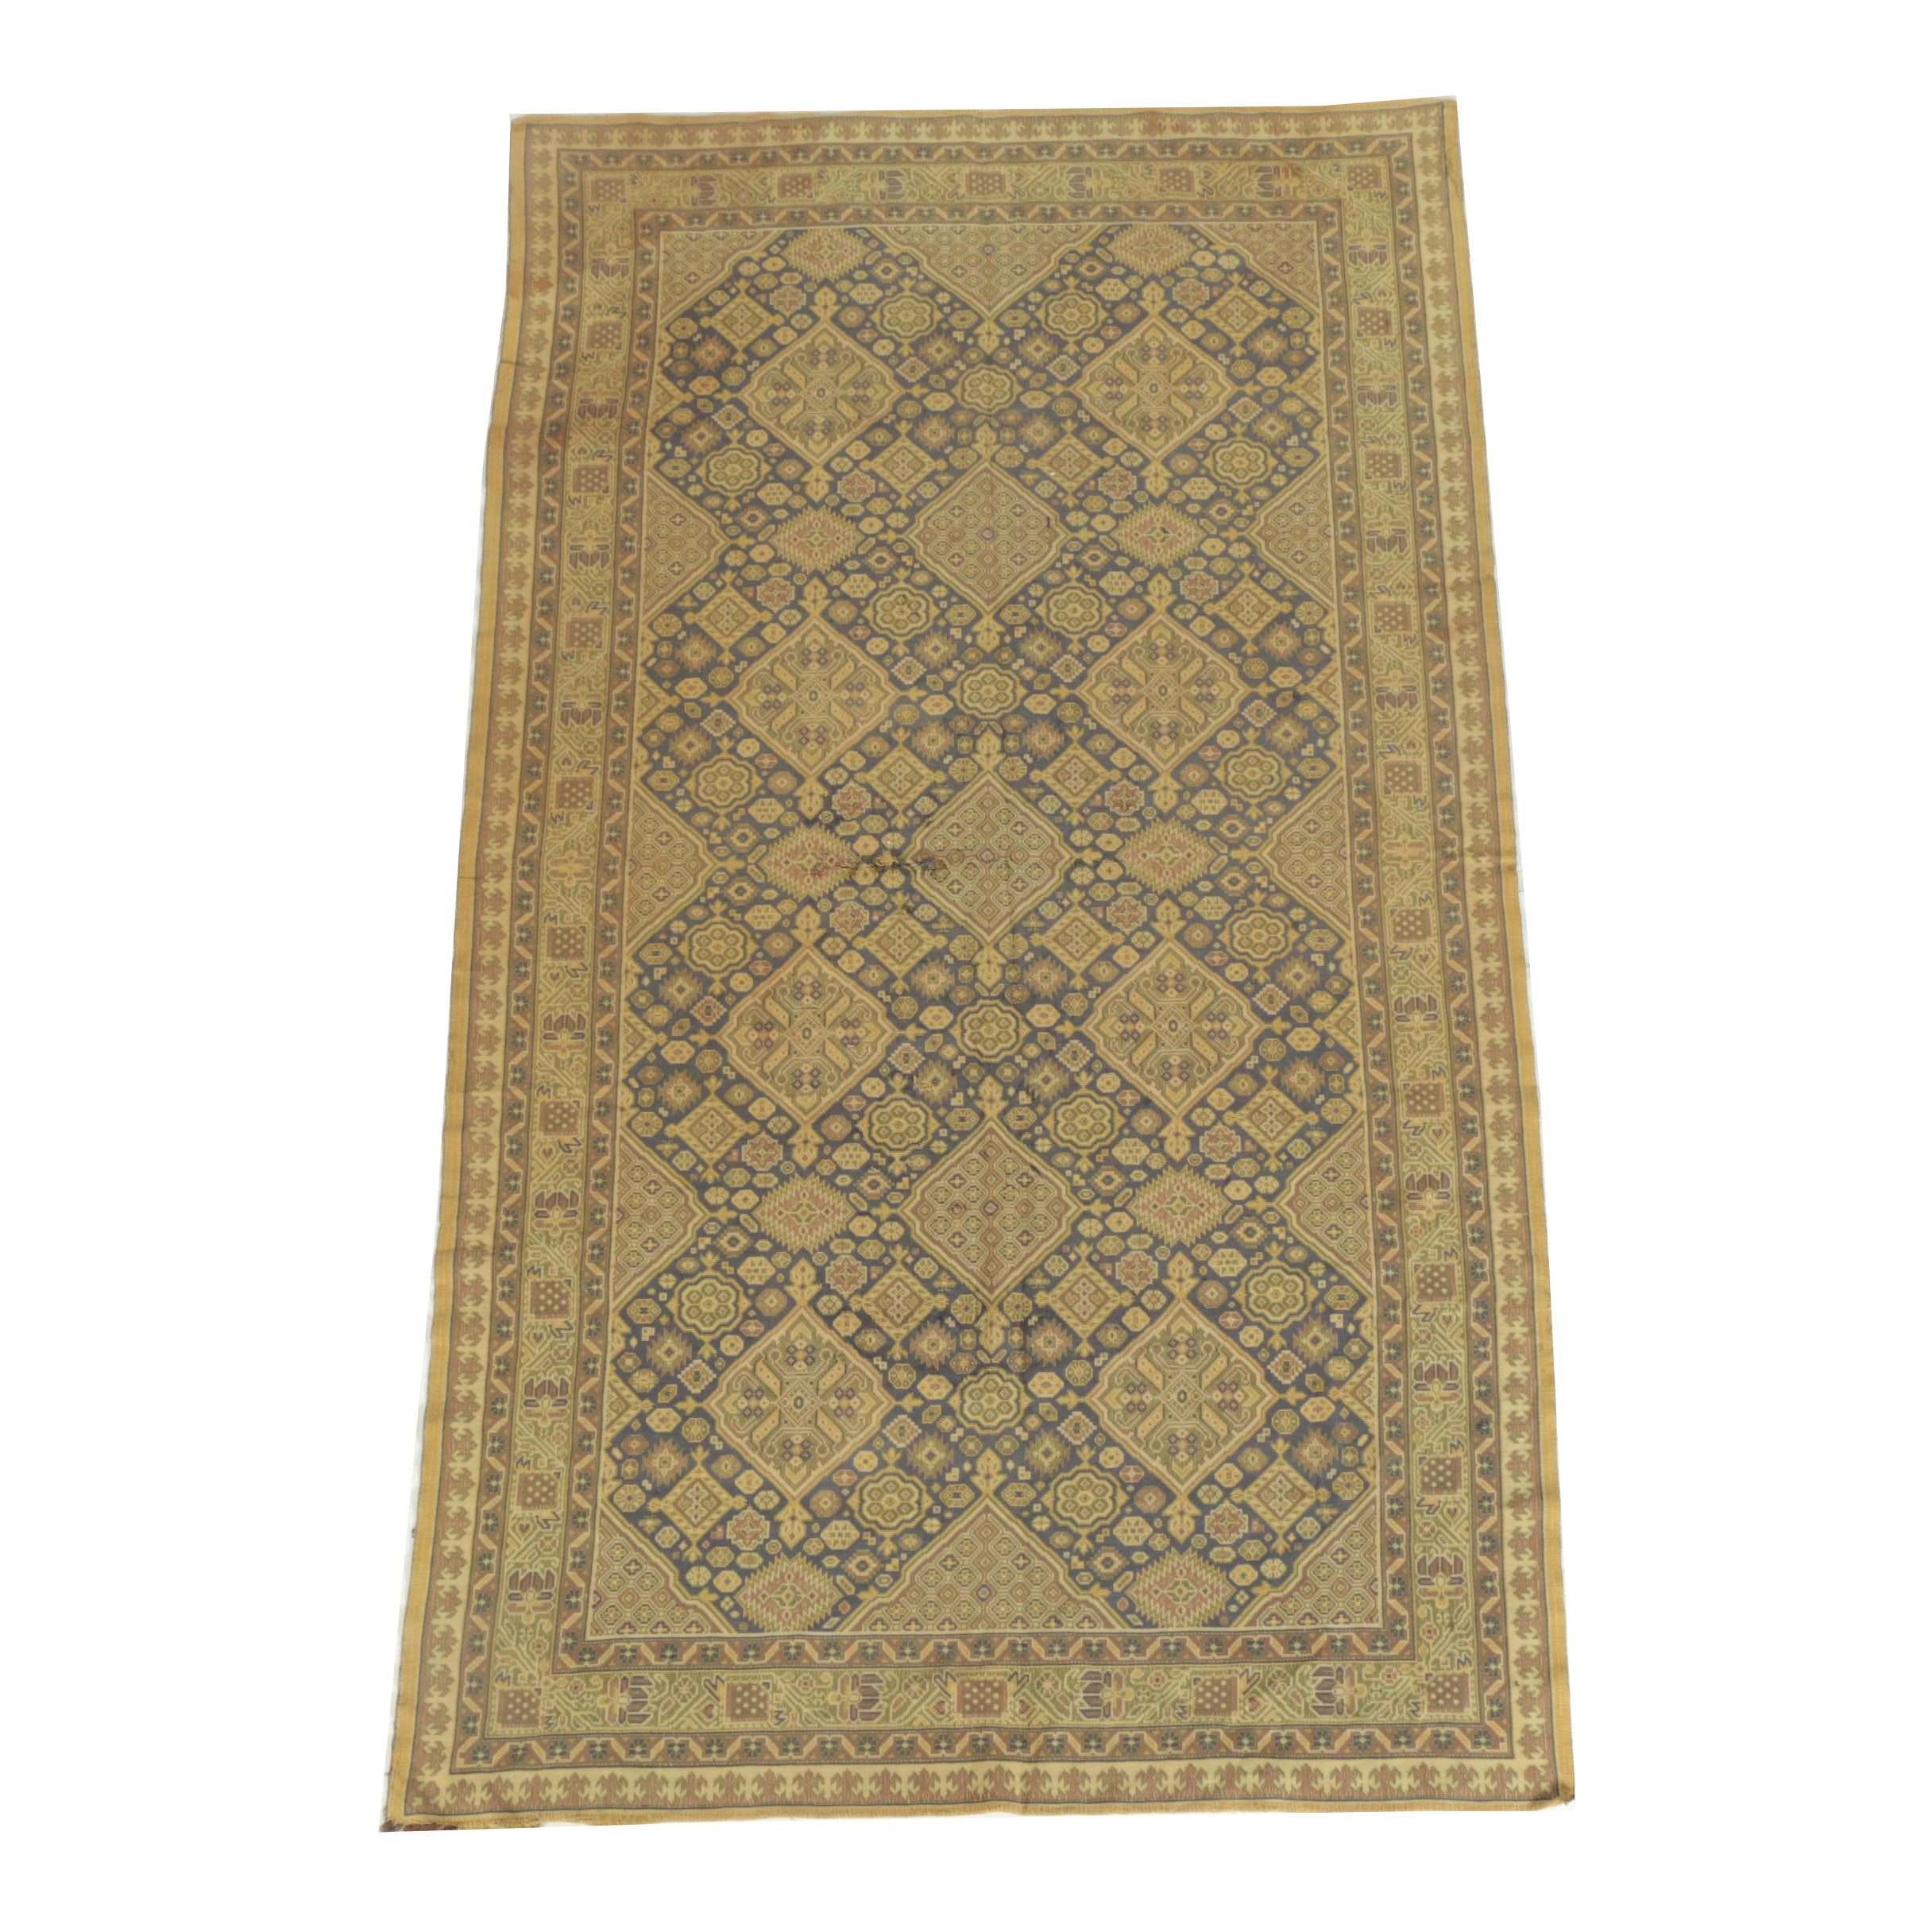 Power-Loomed Caucasian-Style Area Rug